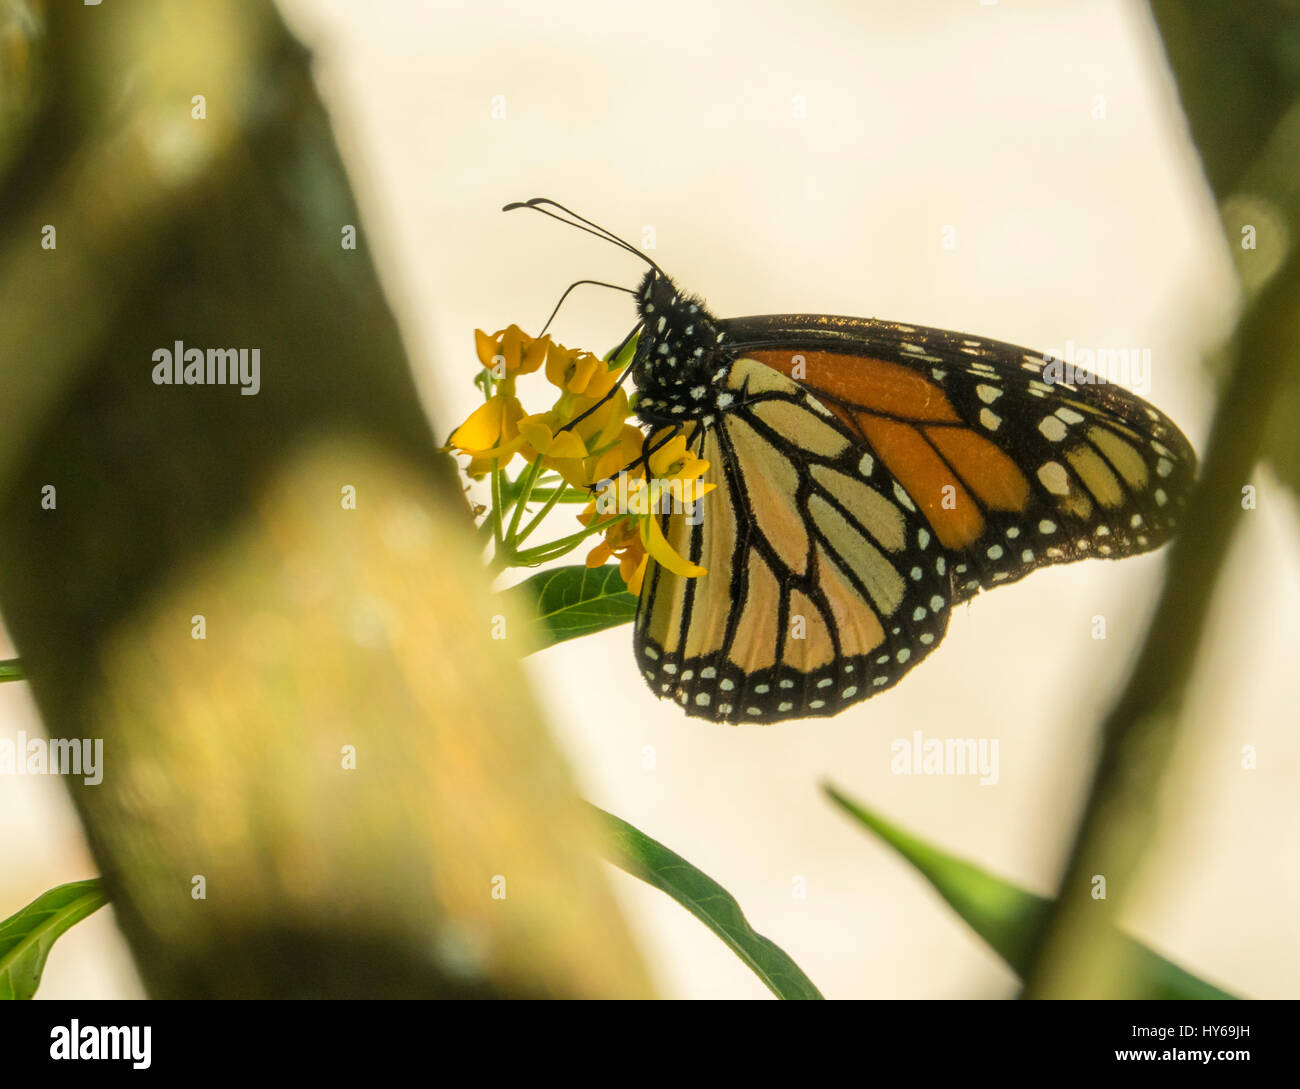 Monarch butterfly feeding on milkweed flowers - Stock Image